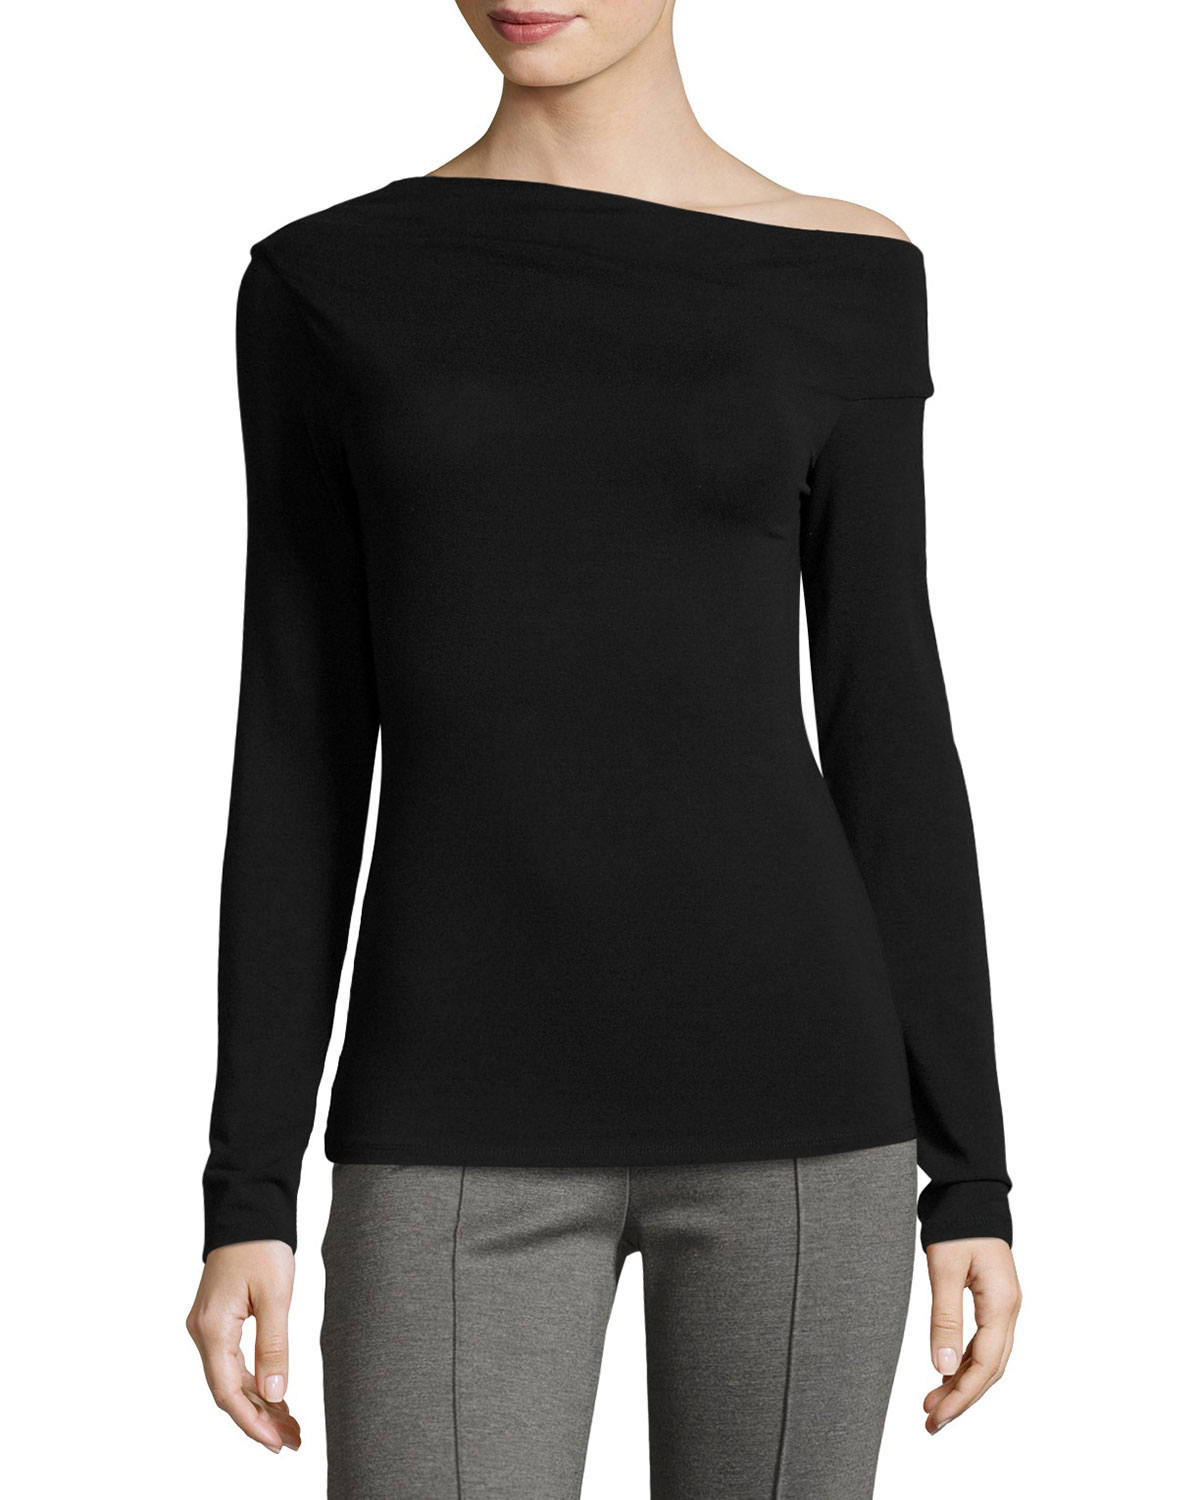 Reilly One-Shoulder Long-Sleeve Top, Black